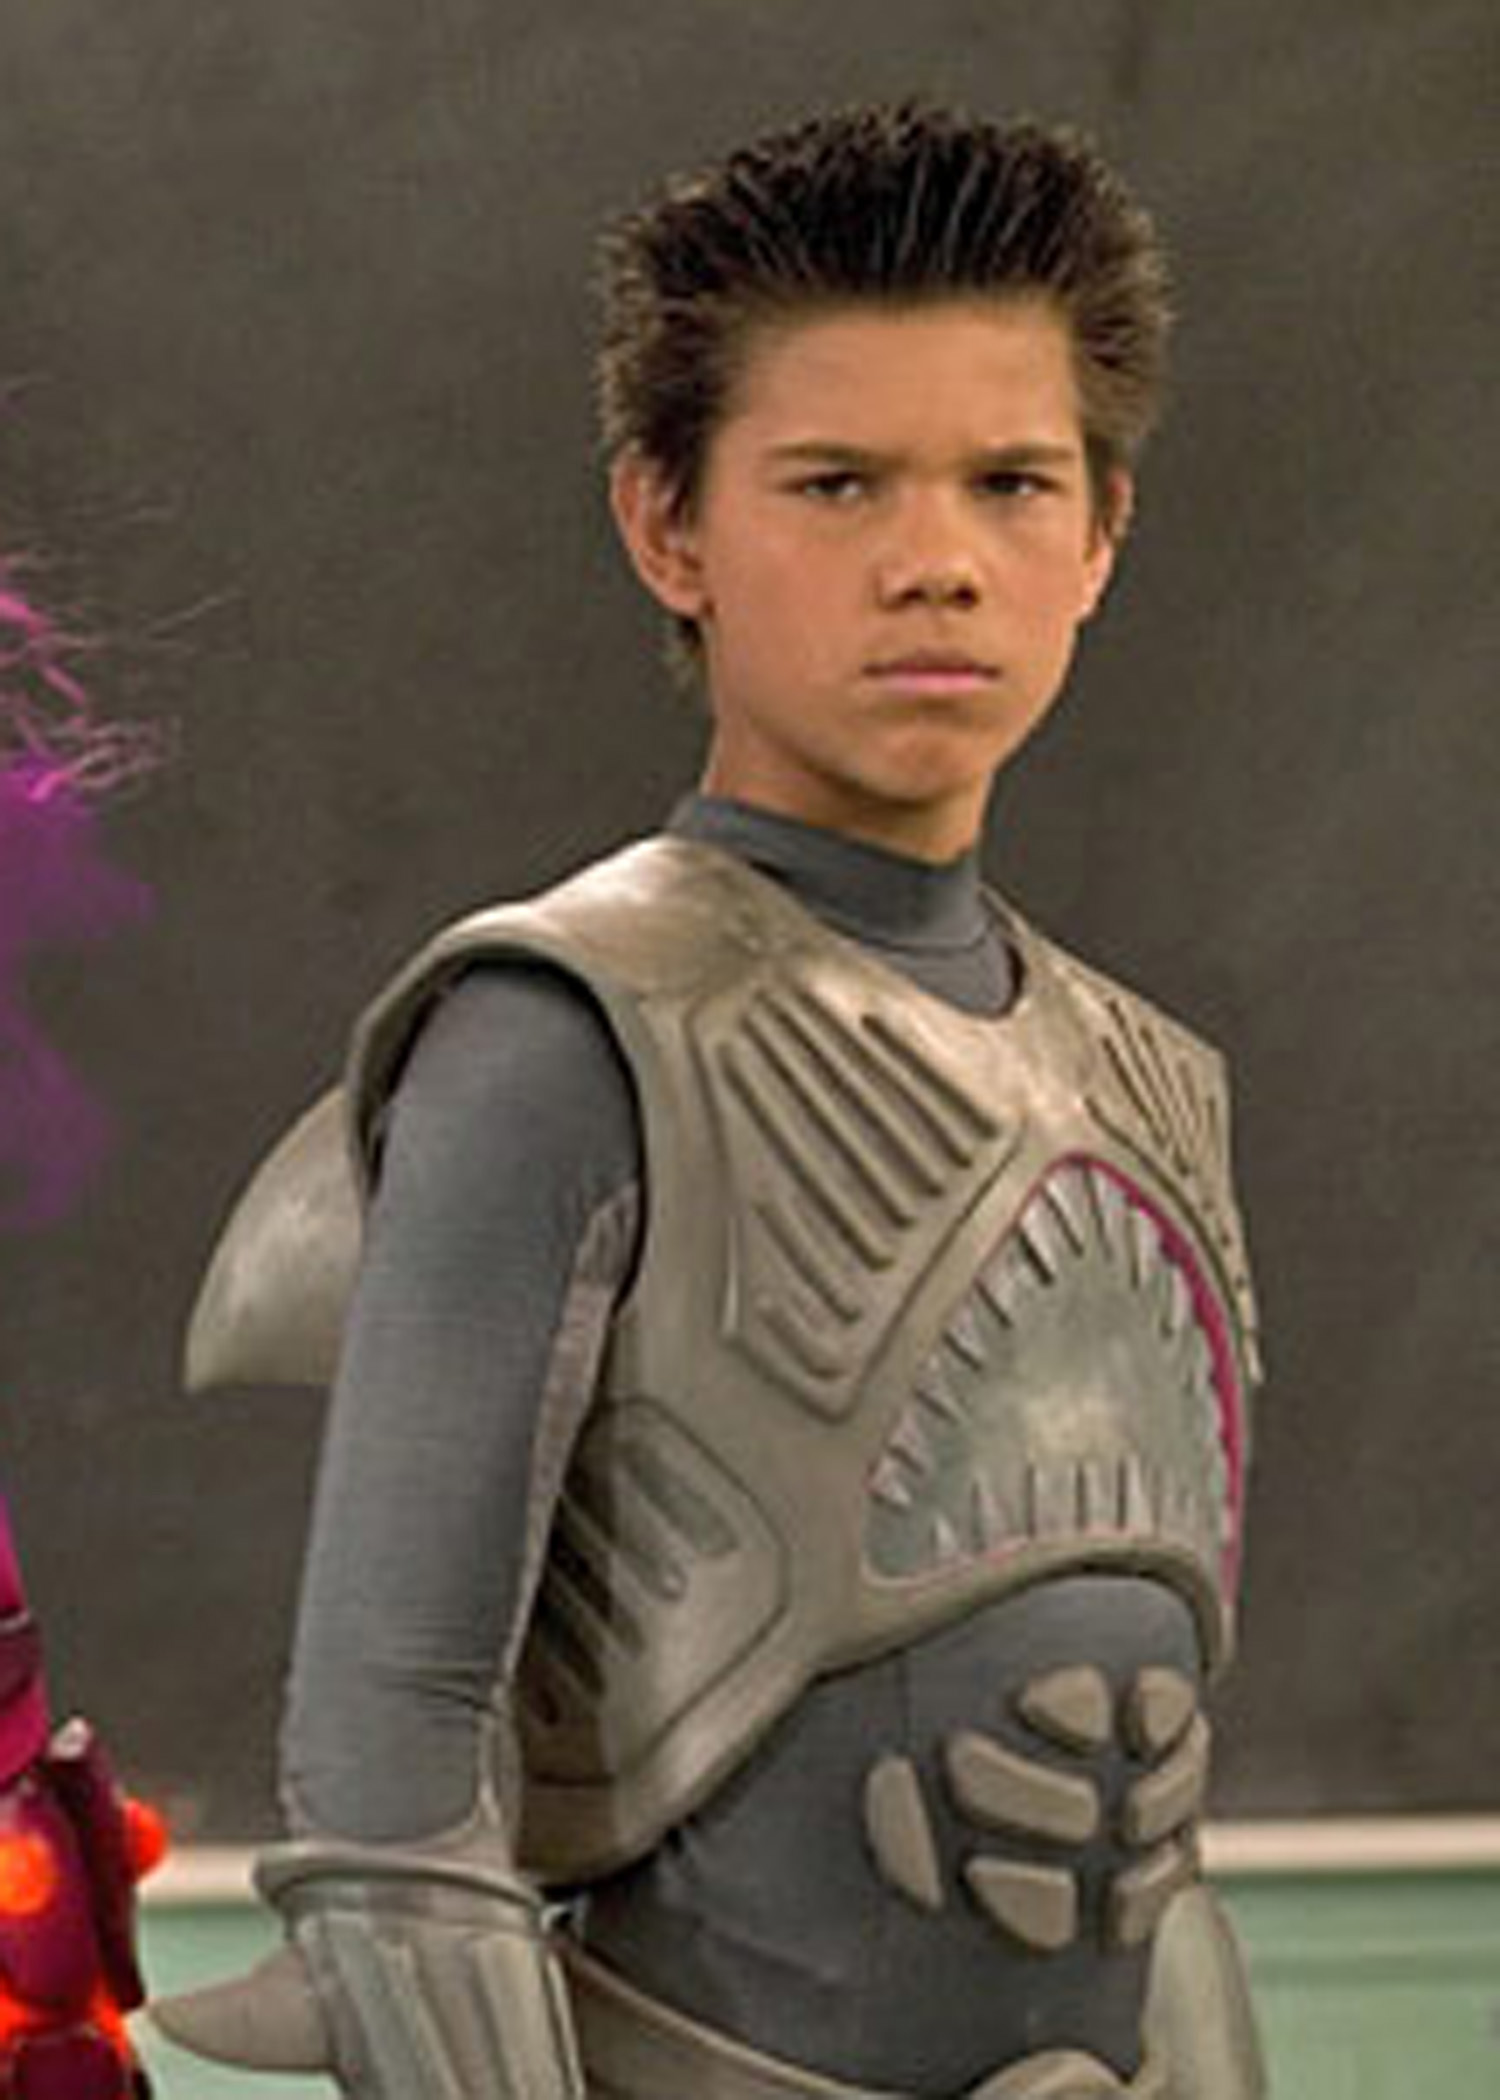 Who are Sharkboy and Lavagirl